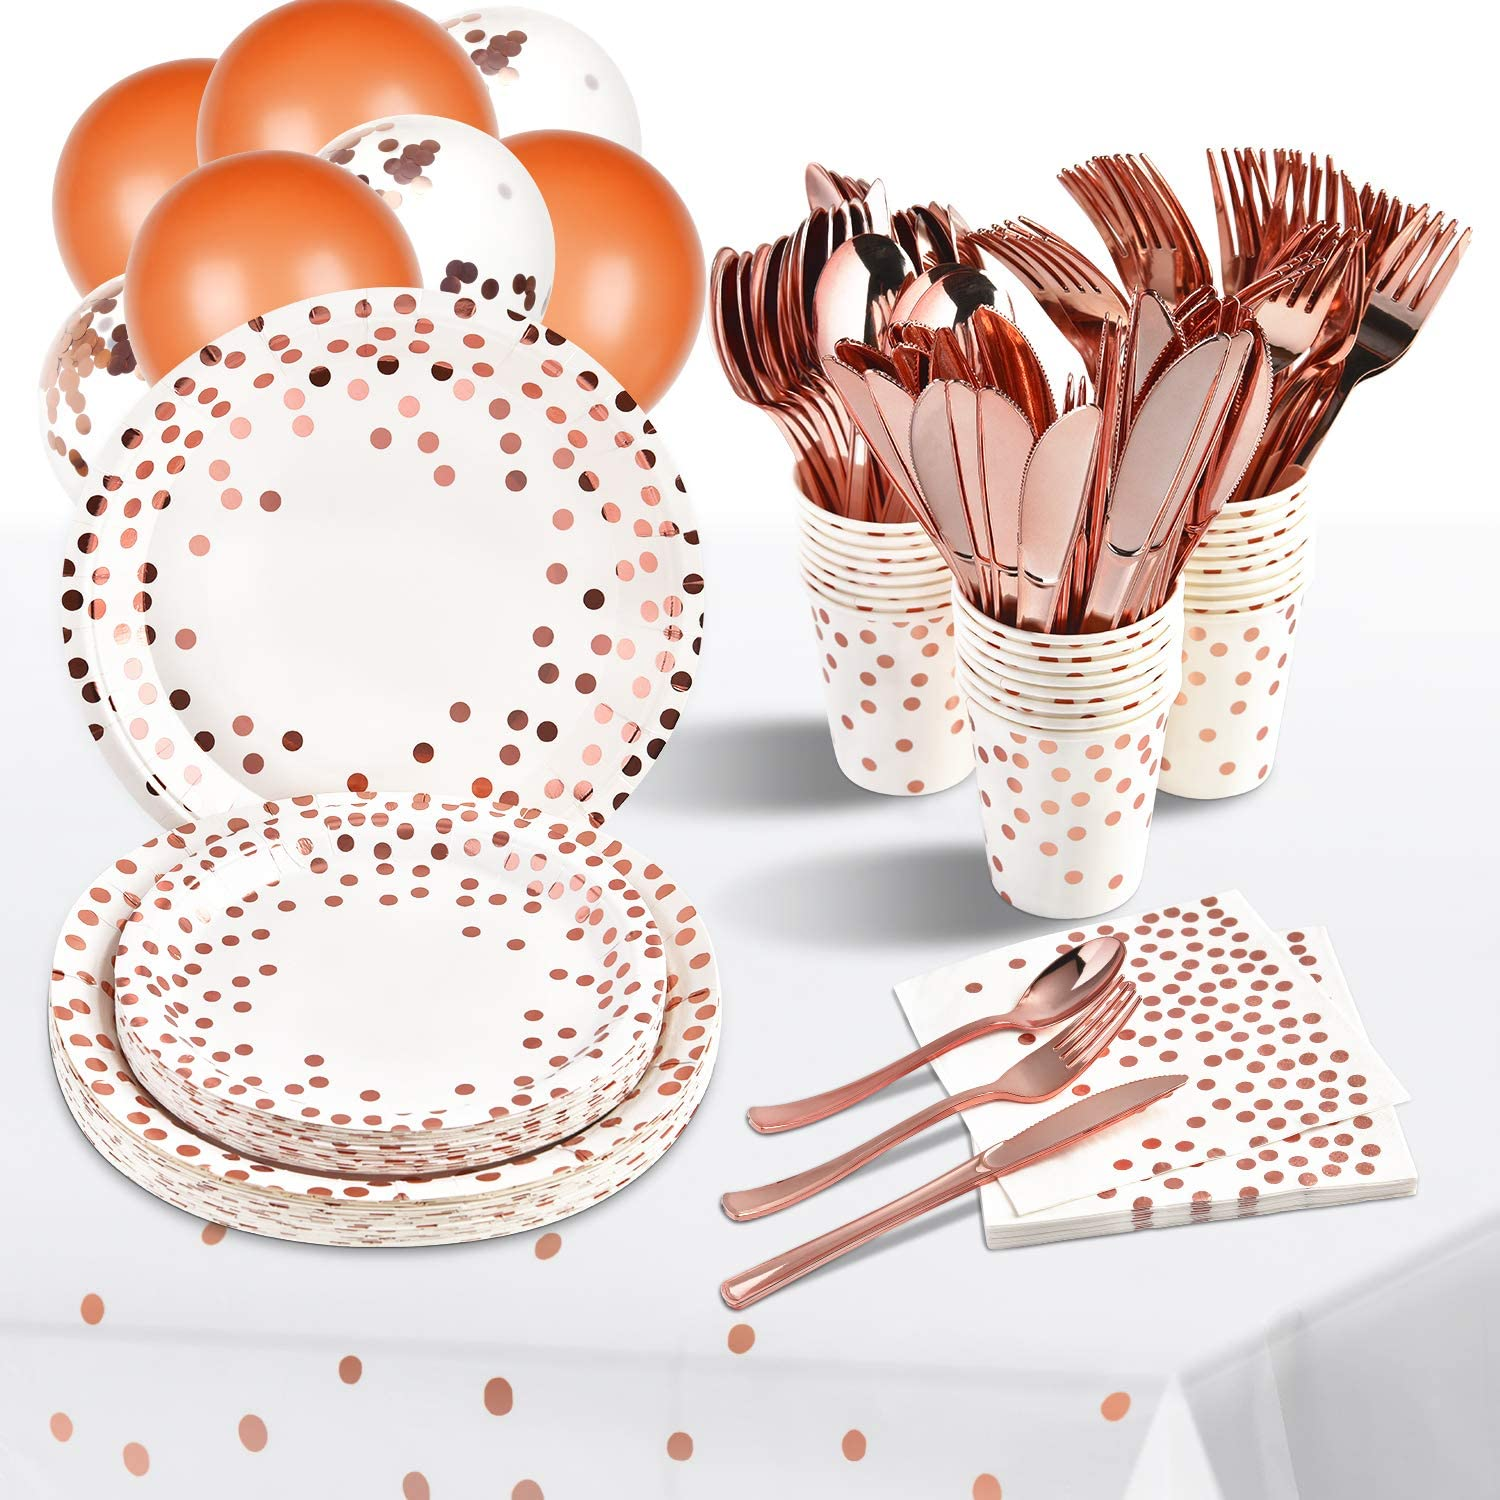 White and Rose Gold Party Supplies 216 PCS Disposable Dinnerware Set White Paper Plates Cups Napkins Rose Gold Plastic Forks Knives Spoons Balloons Tablecloth for Wedding Bridal Baby Shower Birthday